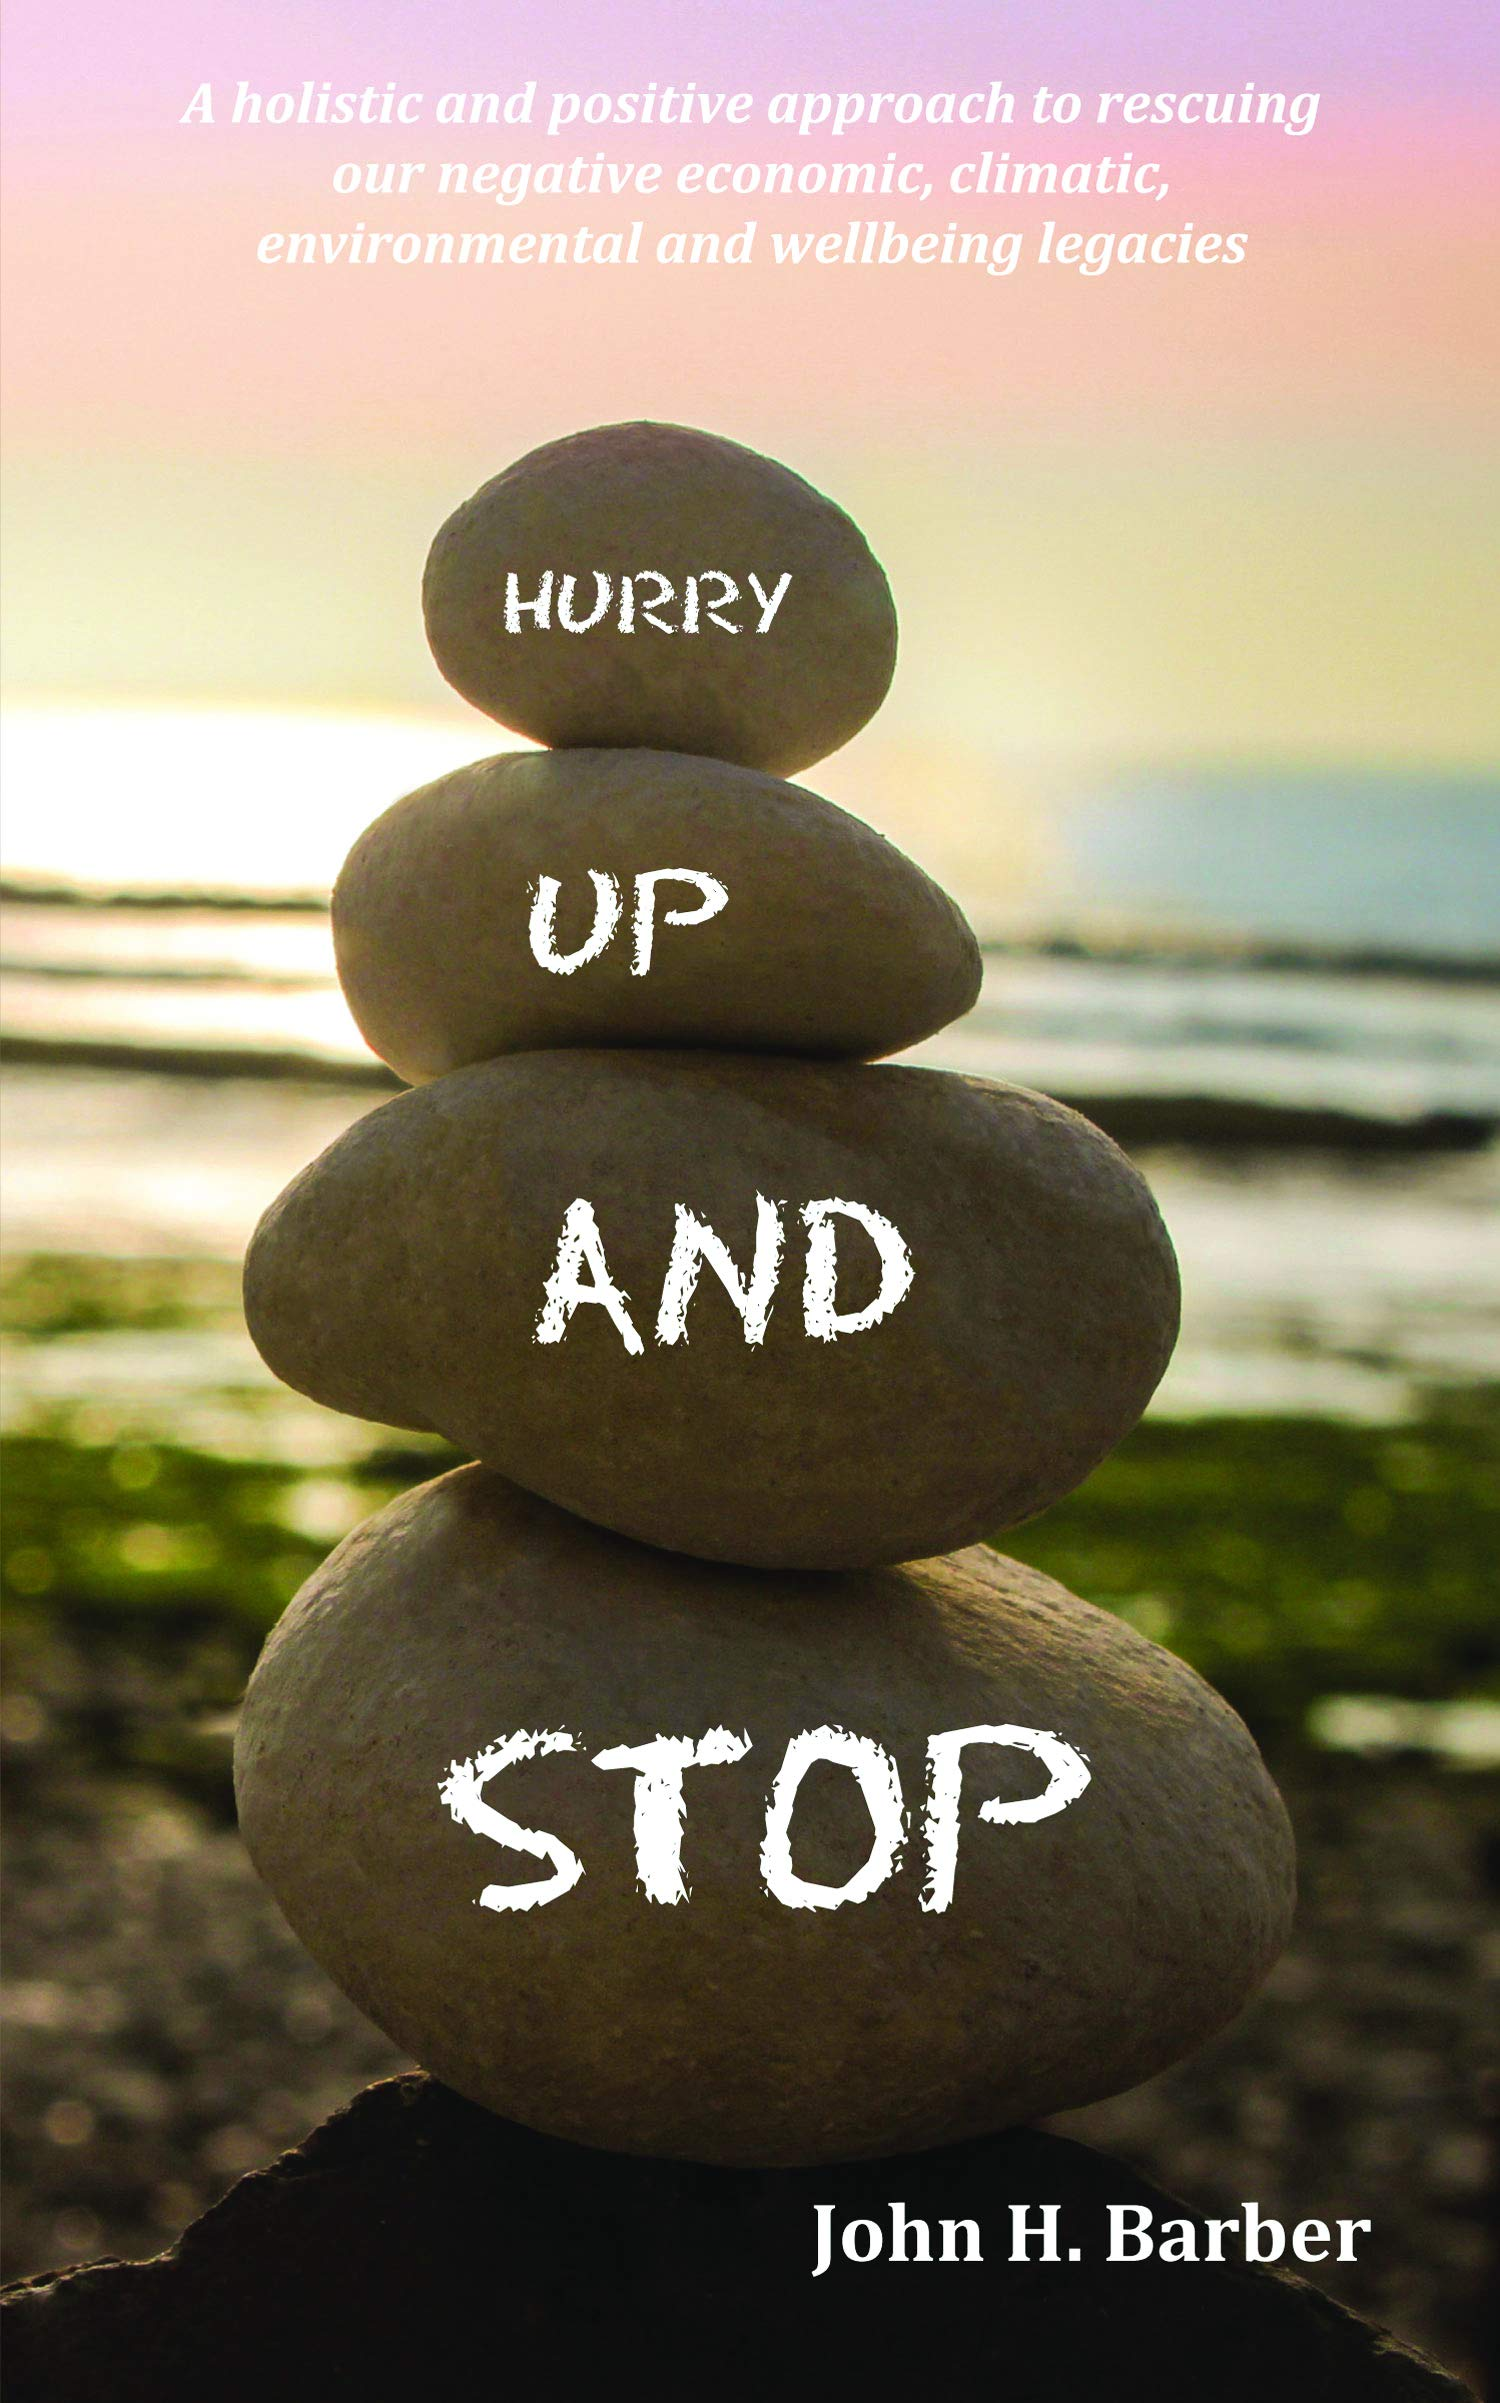 Hurry Up and Stop: A holistic and positive approach to rescuing our negative economic, climatic, environmental and wellbeing legacies